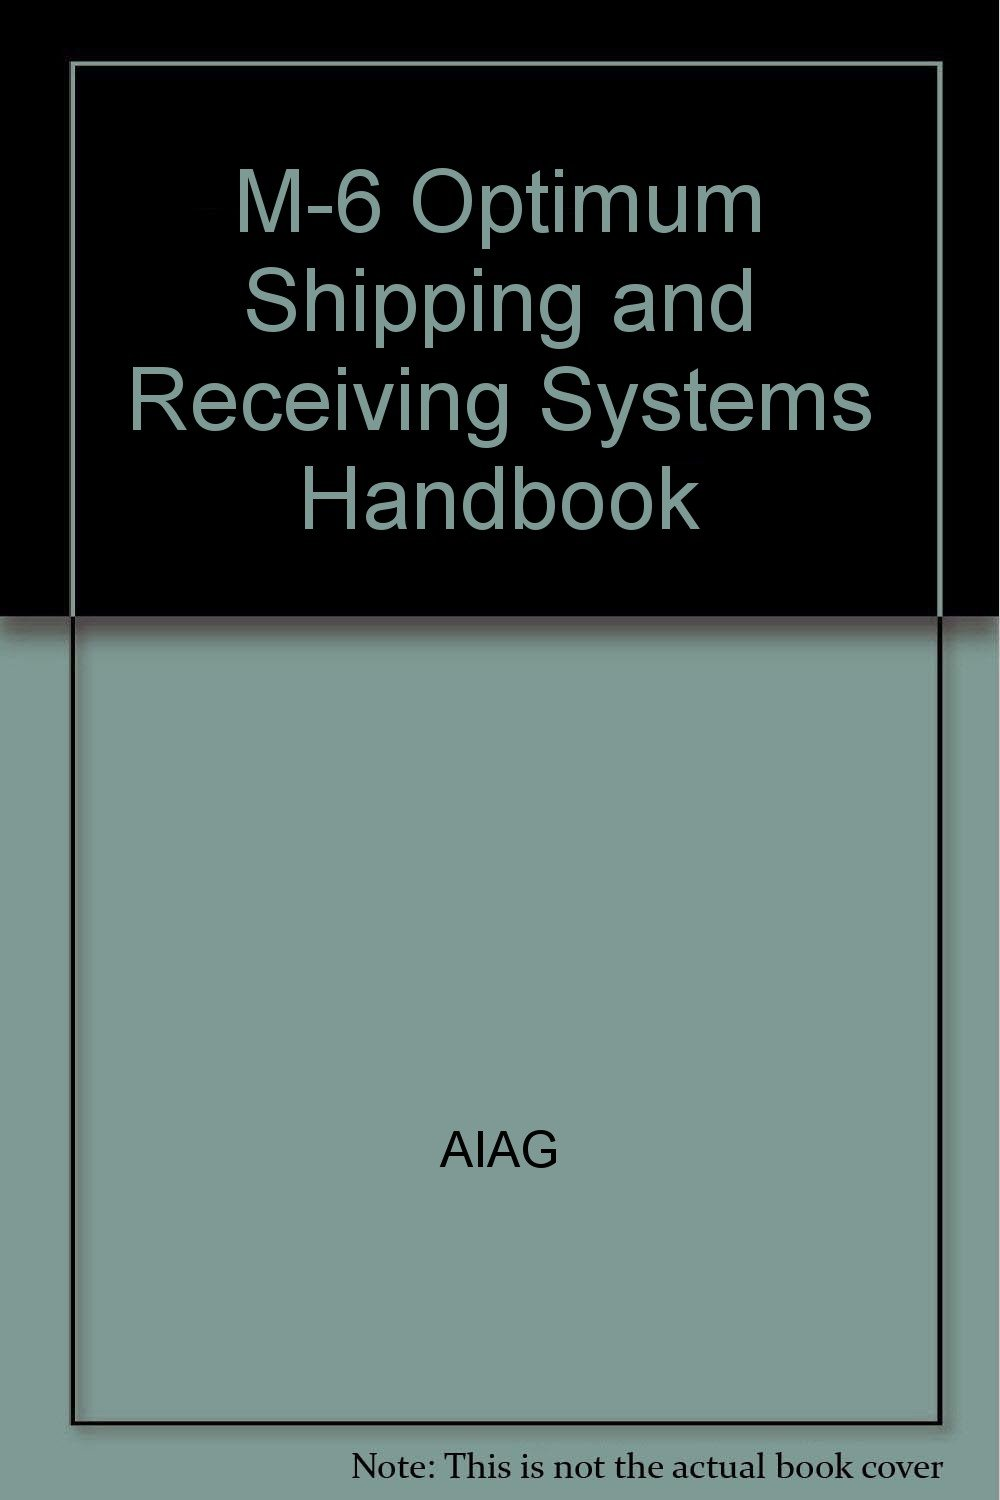 M-6 Optimum Shipping and Receiving Systems Handbook pdf